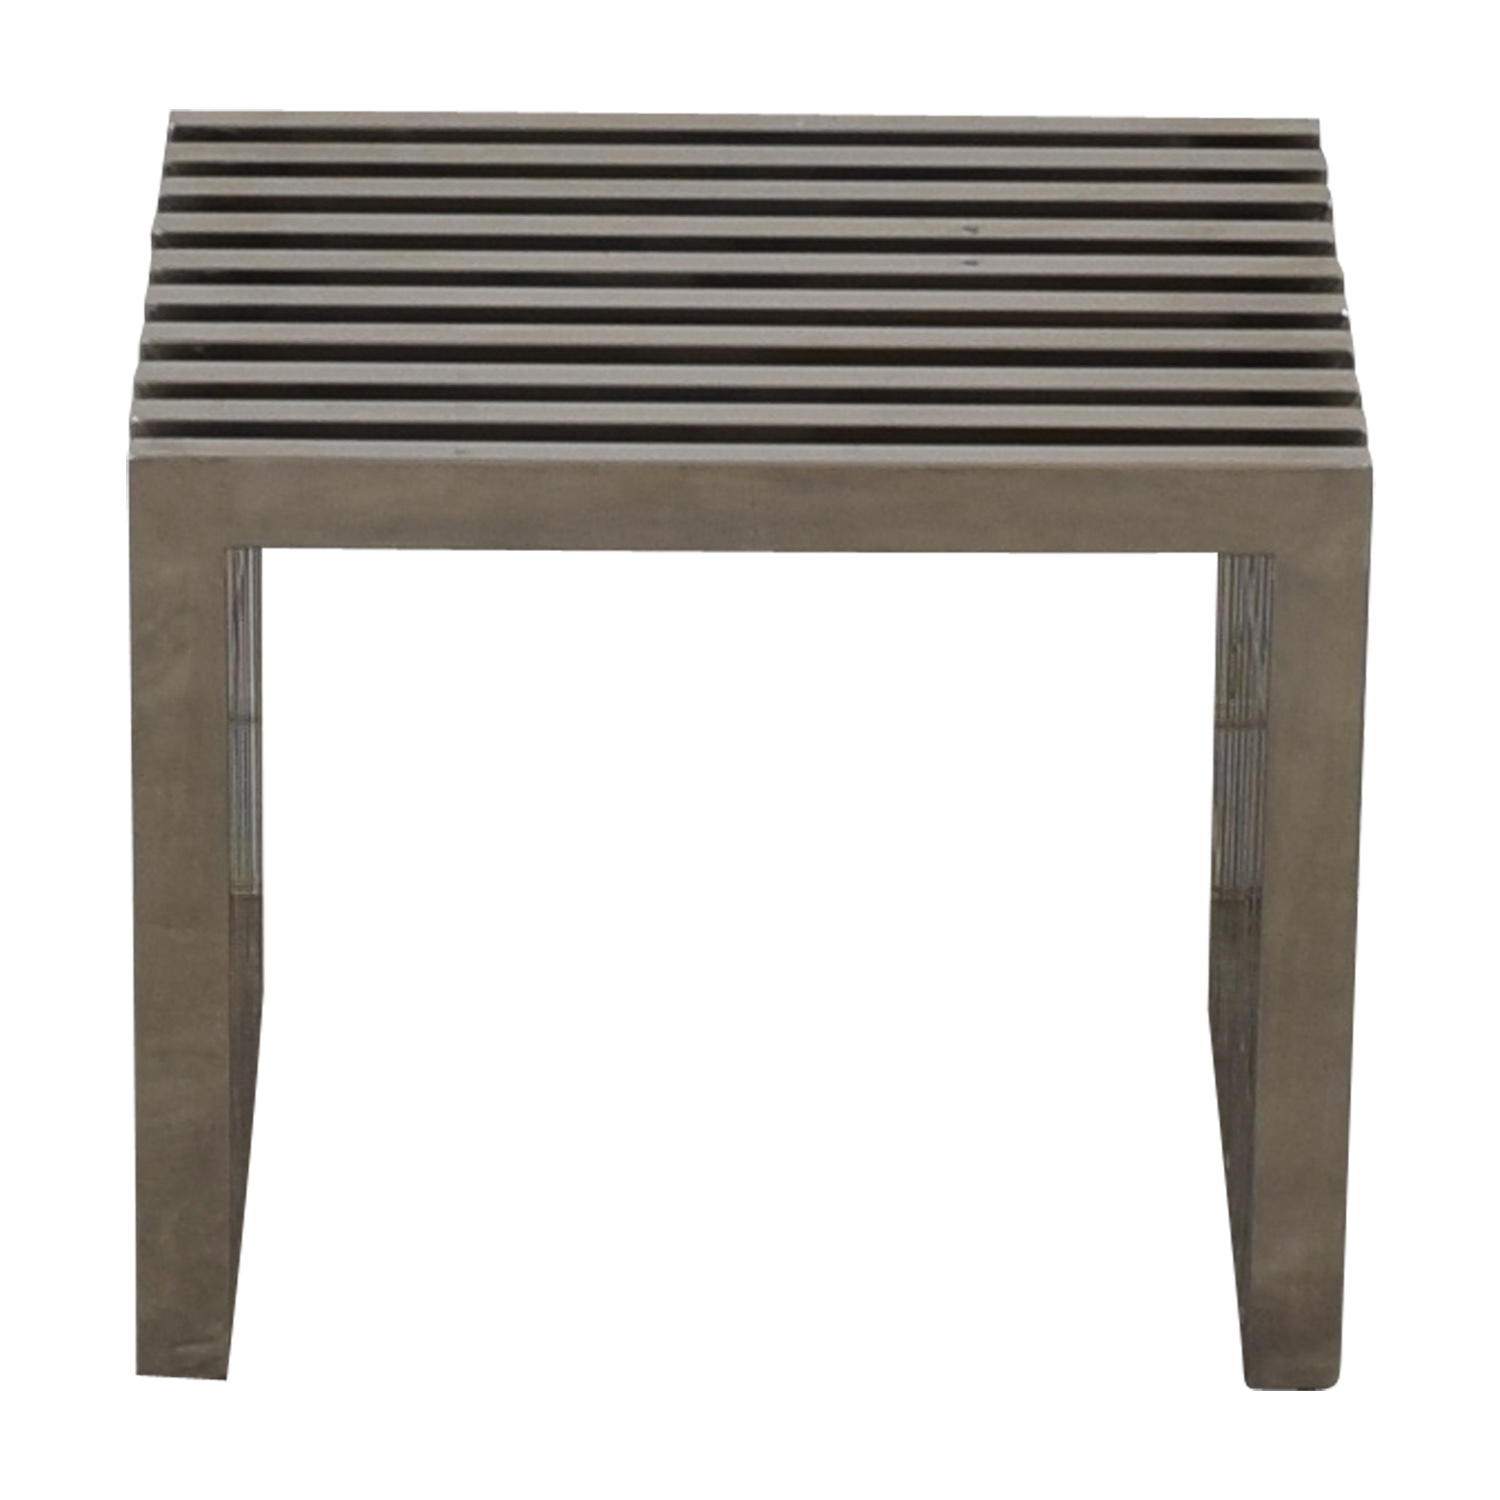 Mid-Century Metal Bench or End Table dimensions